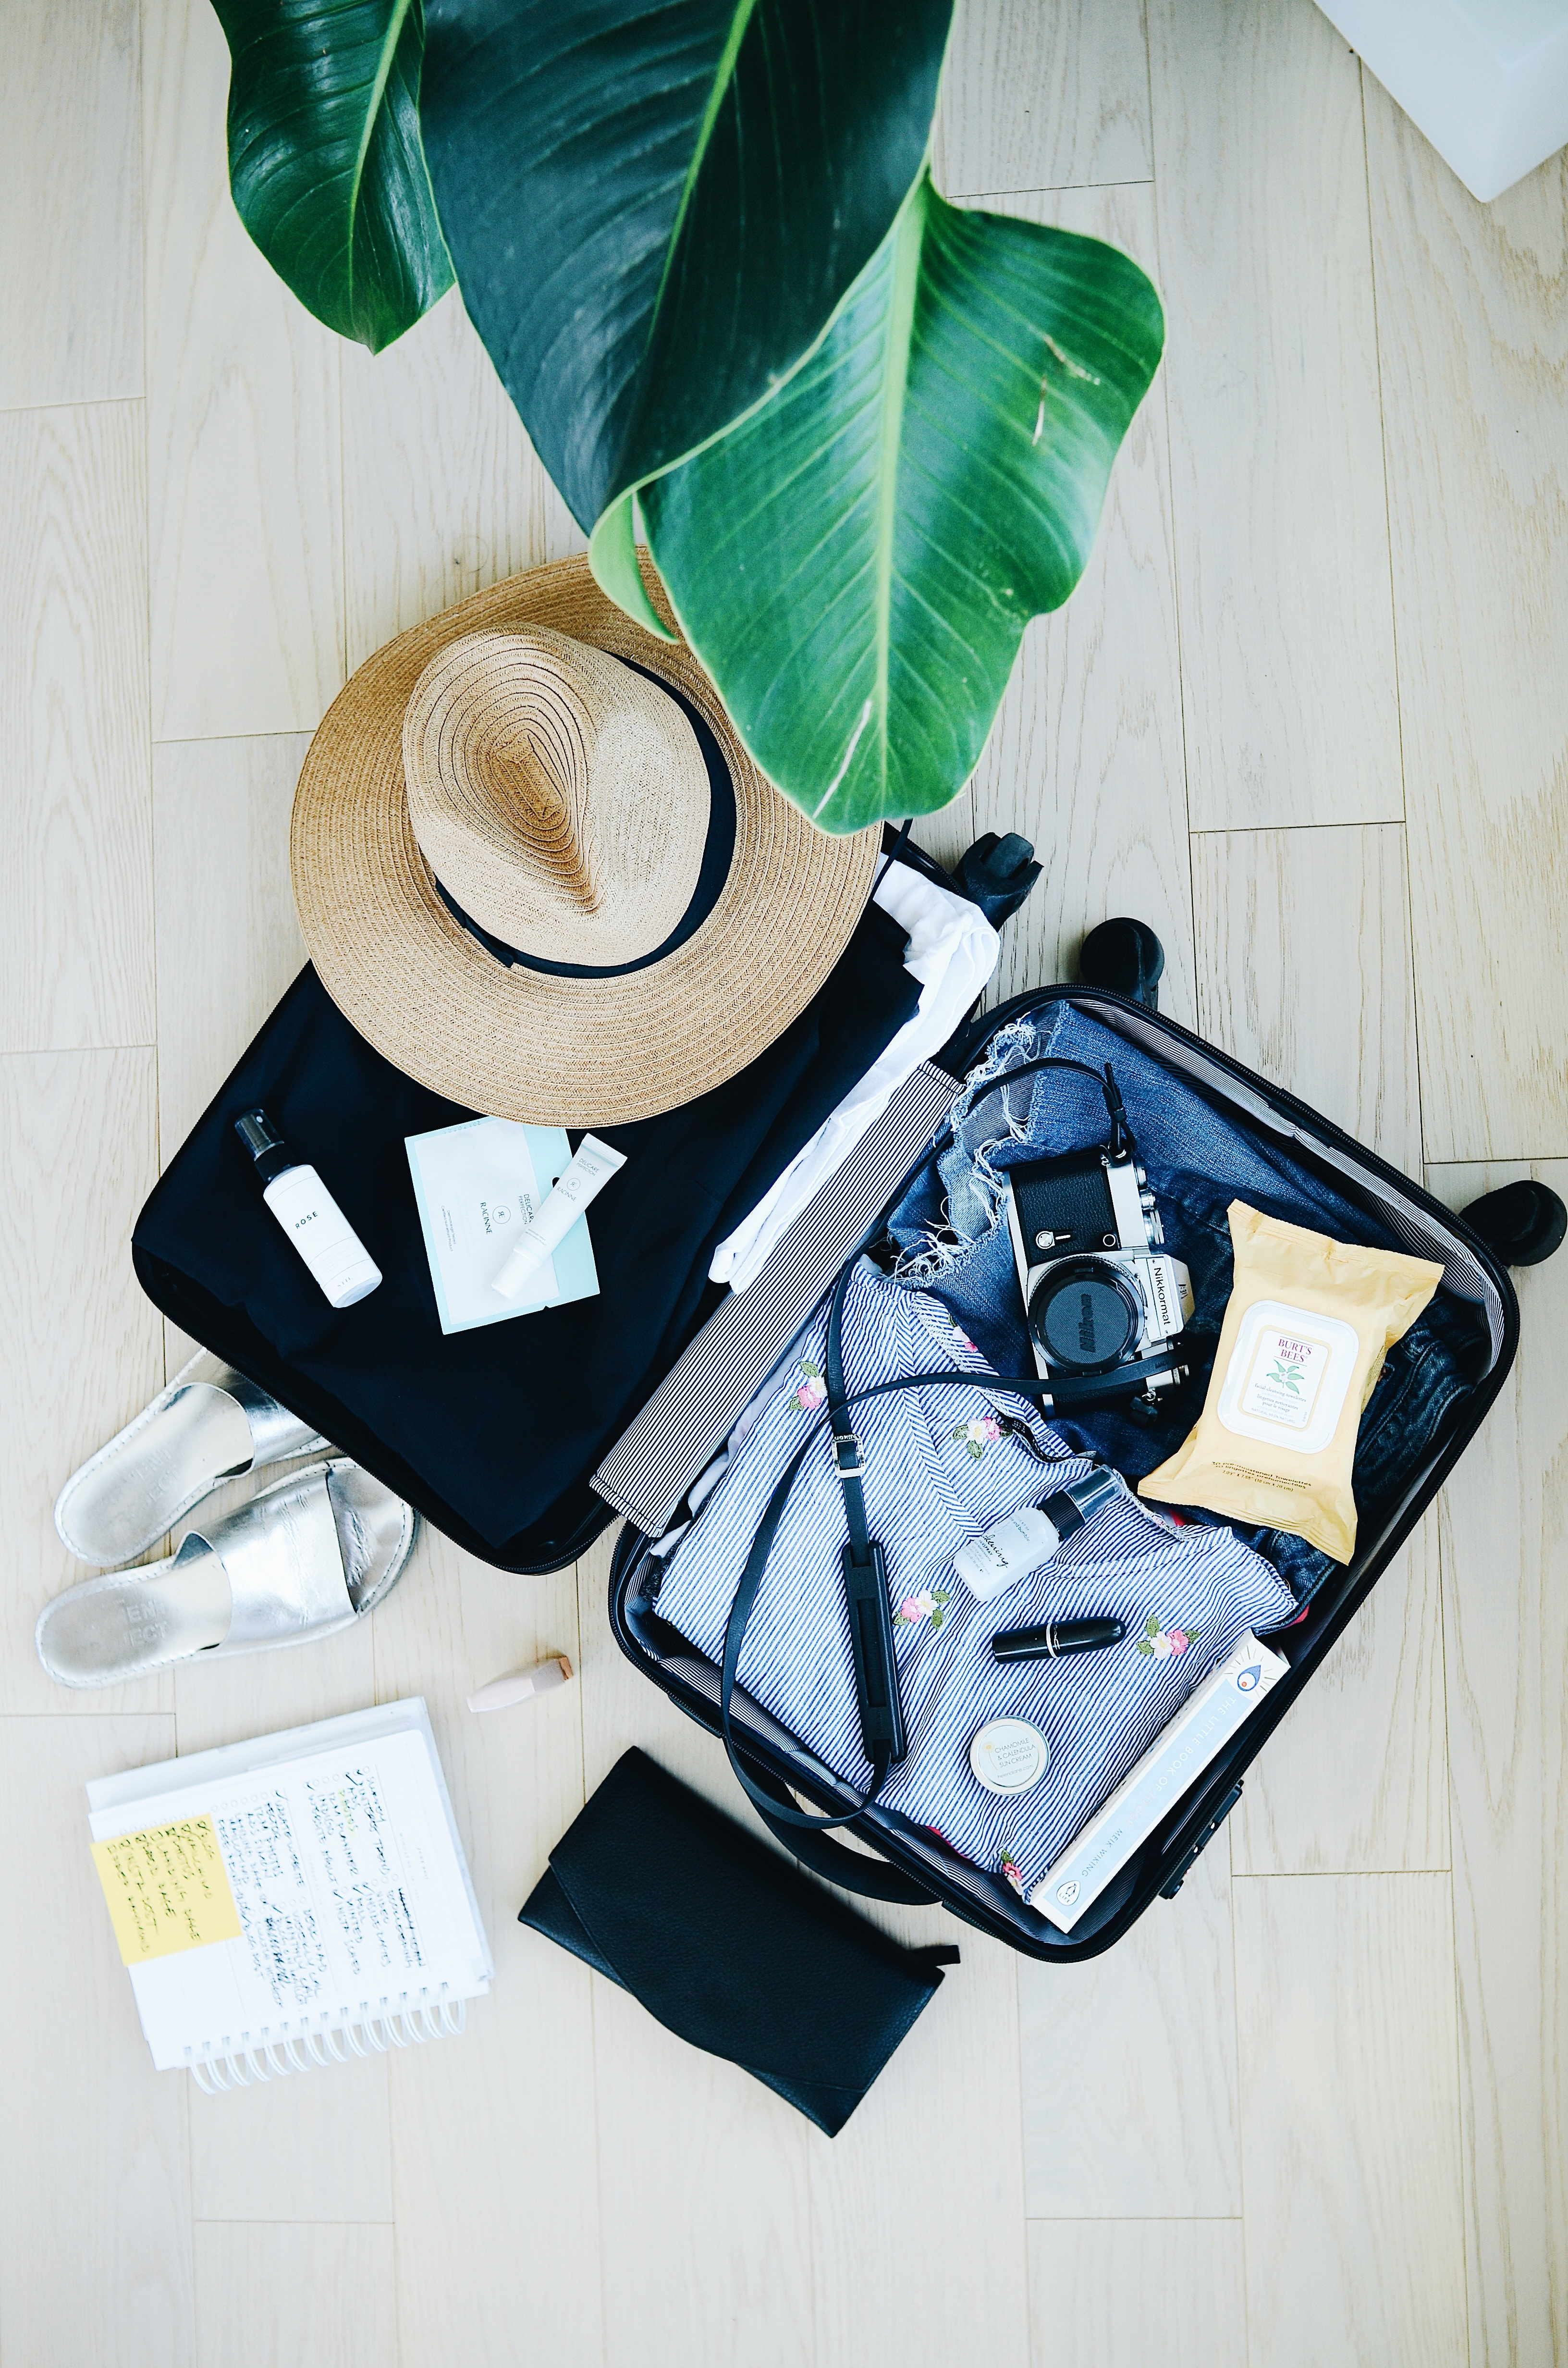 6 Honeymoon Packing Hacks You Need to Know, honeymoon bathing suits, packing hacks, packing hacks for travel, suitcase packing hacks, what to pack for honeymoon